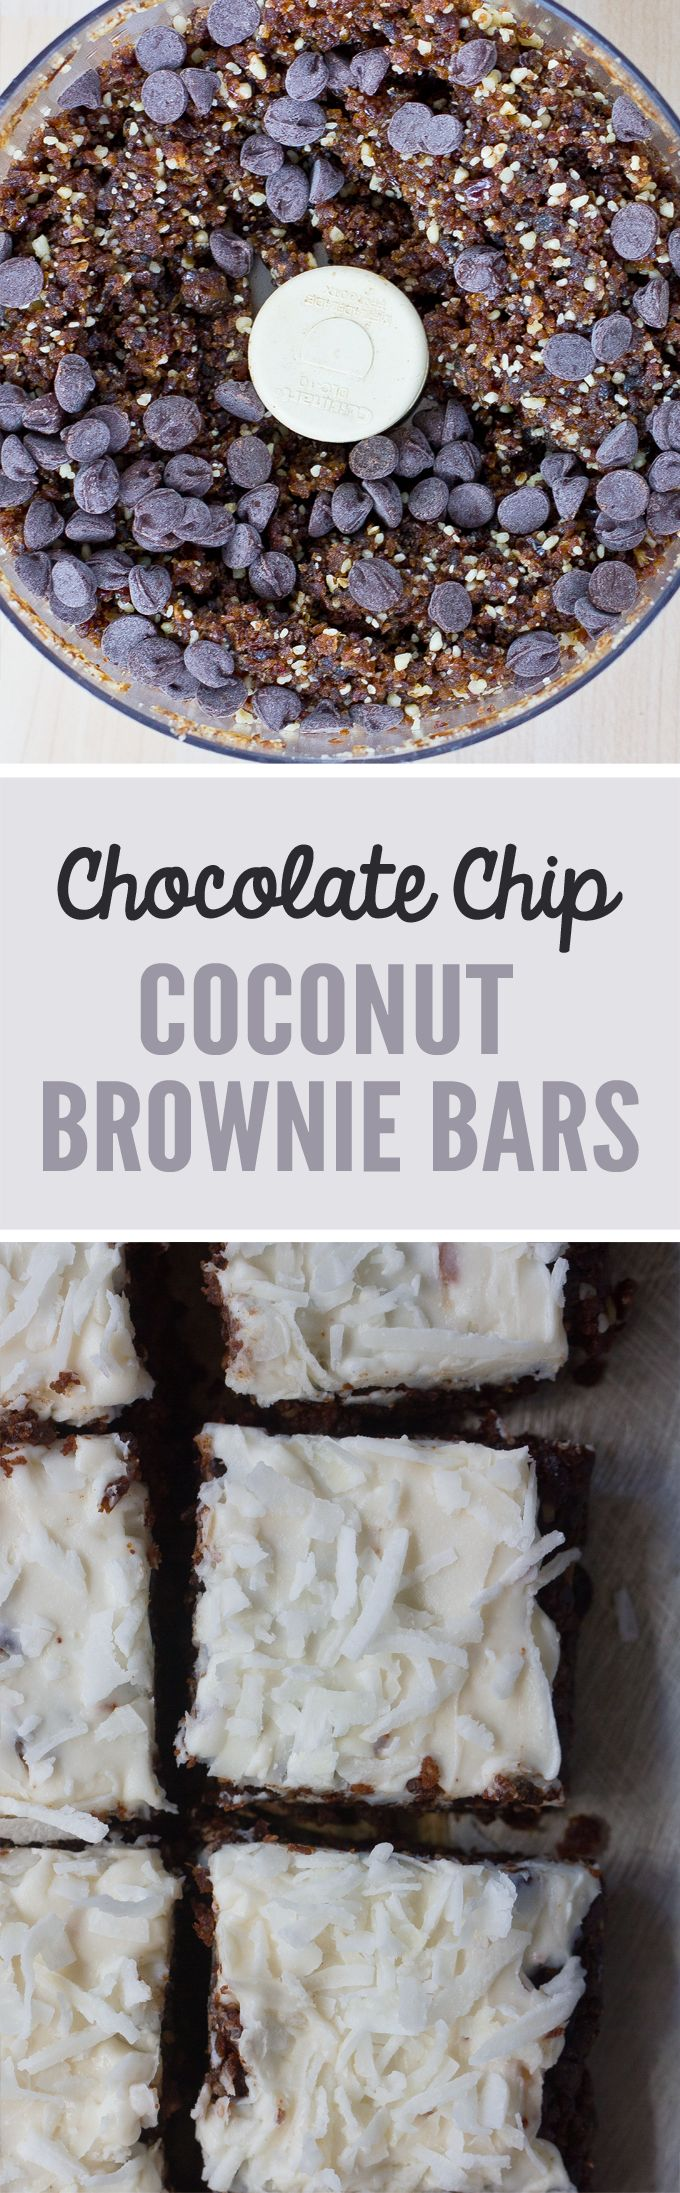 Lucy's favourite ...Coconut Brownie Bars - Ingredients: 6 tbsp cocoa powder, 1/2 cup shredded coconut, 1/4 cup... Full recipe: http://chocolatecoveredkatie.com/2016/09/01/coconut-chocolate-chip-brownie-bars-raw-vegan/ @choccoveredkt